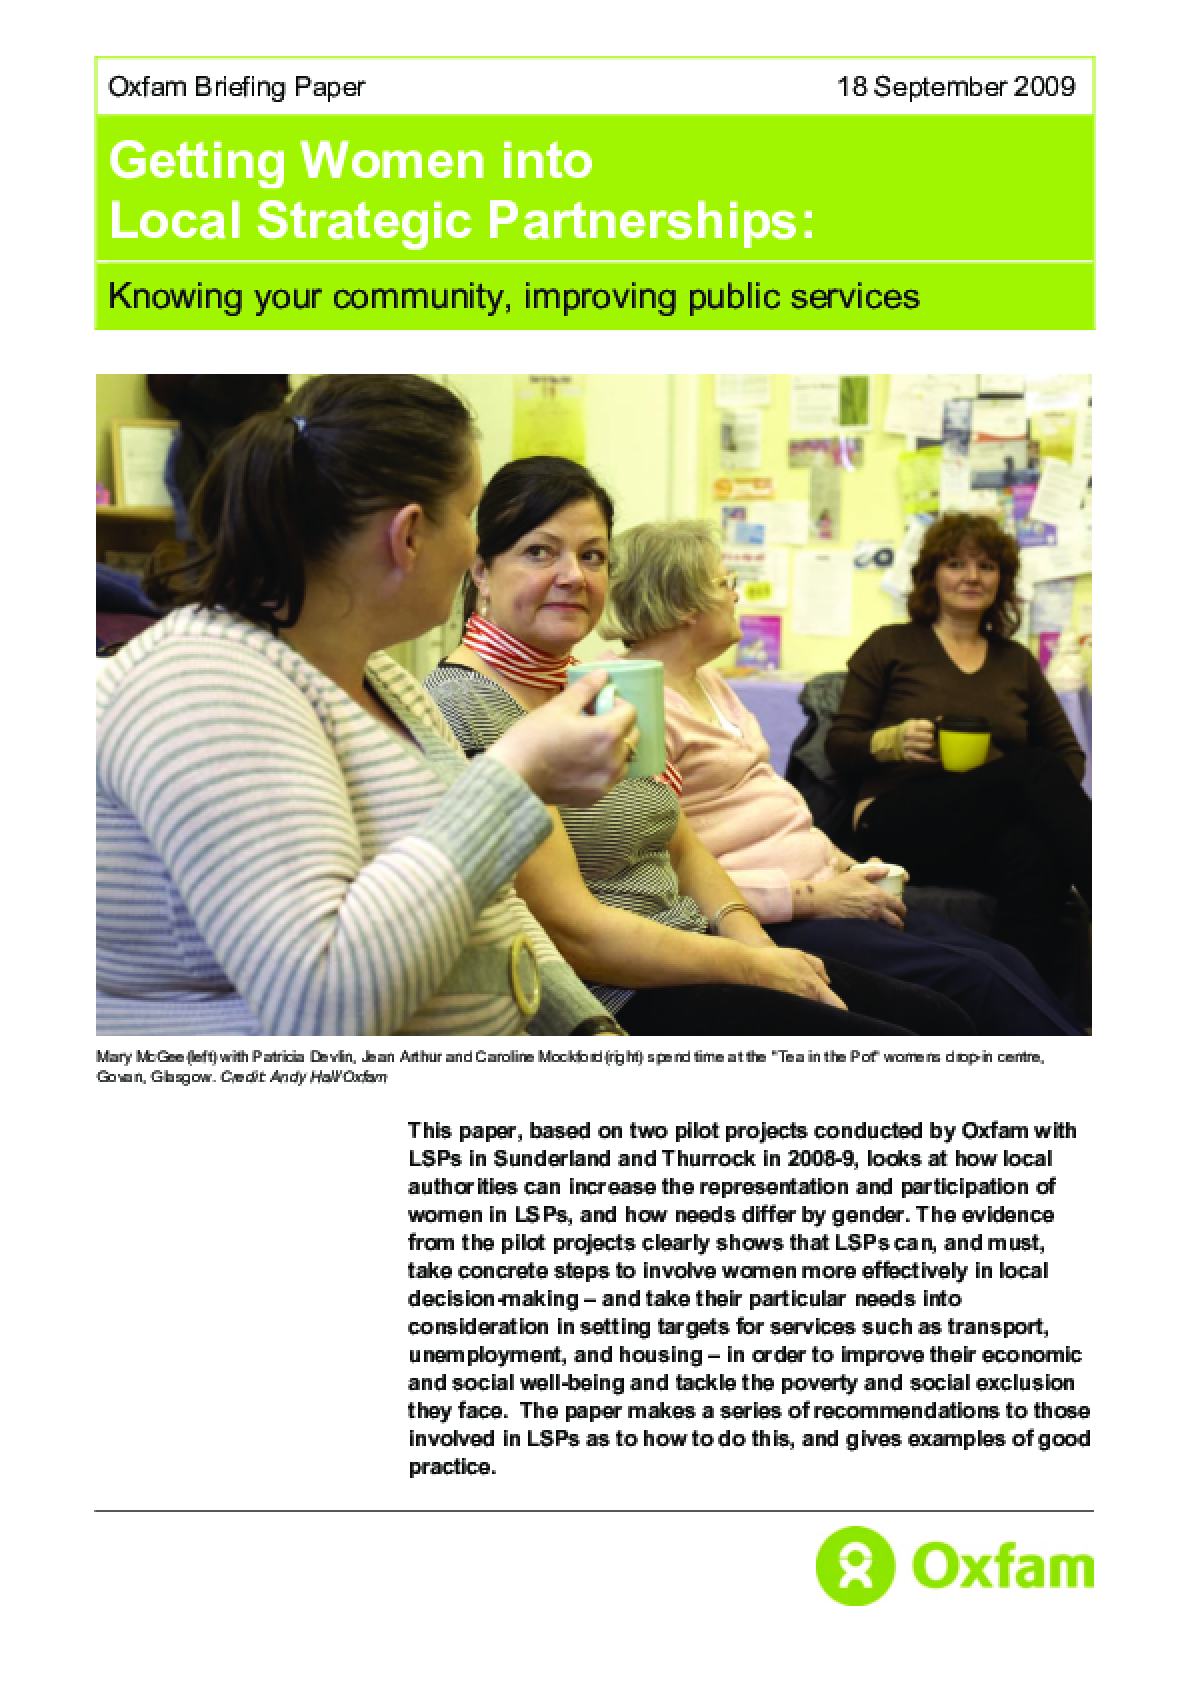 Getting Women into Local Strategic Partnerships: Knowing your community, improving public services